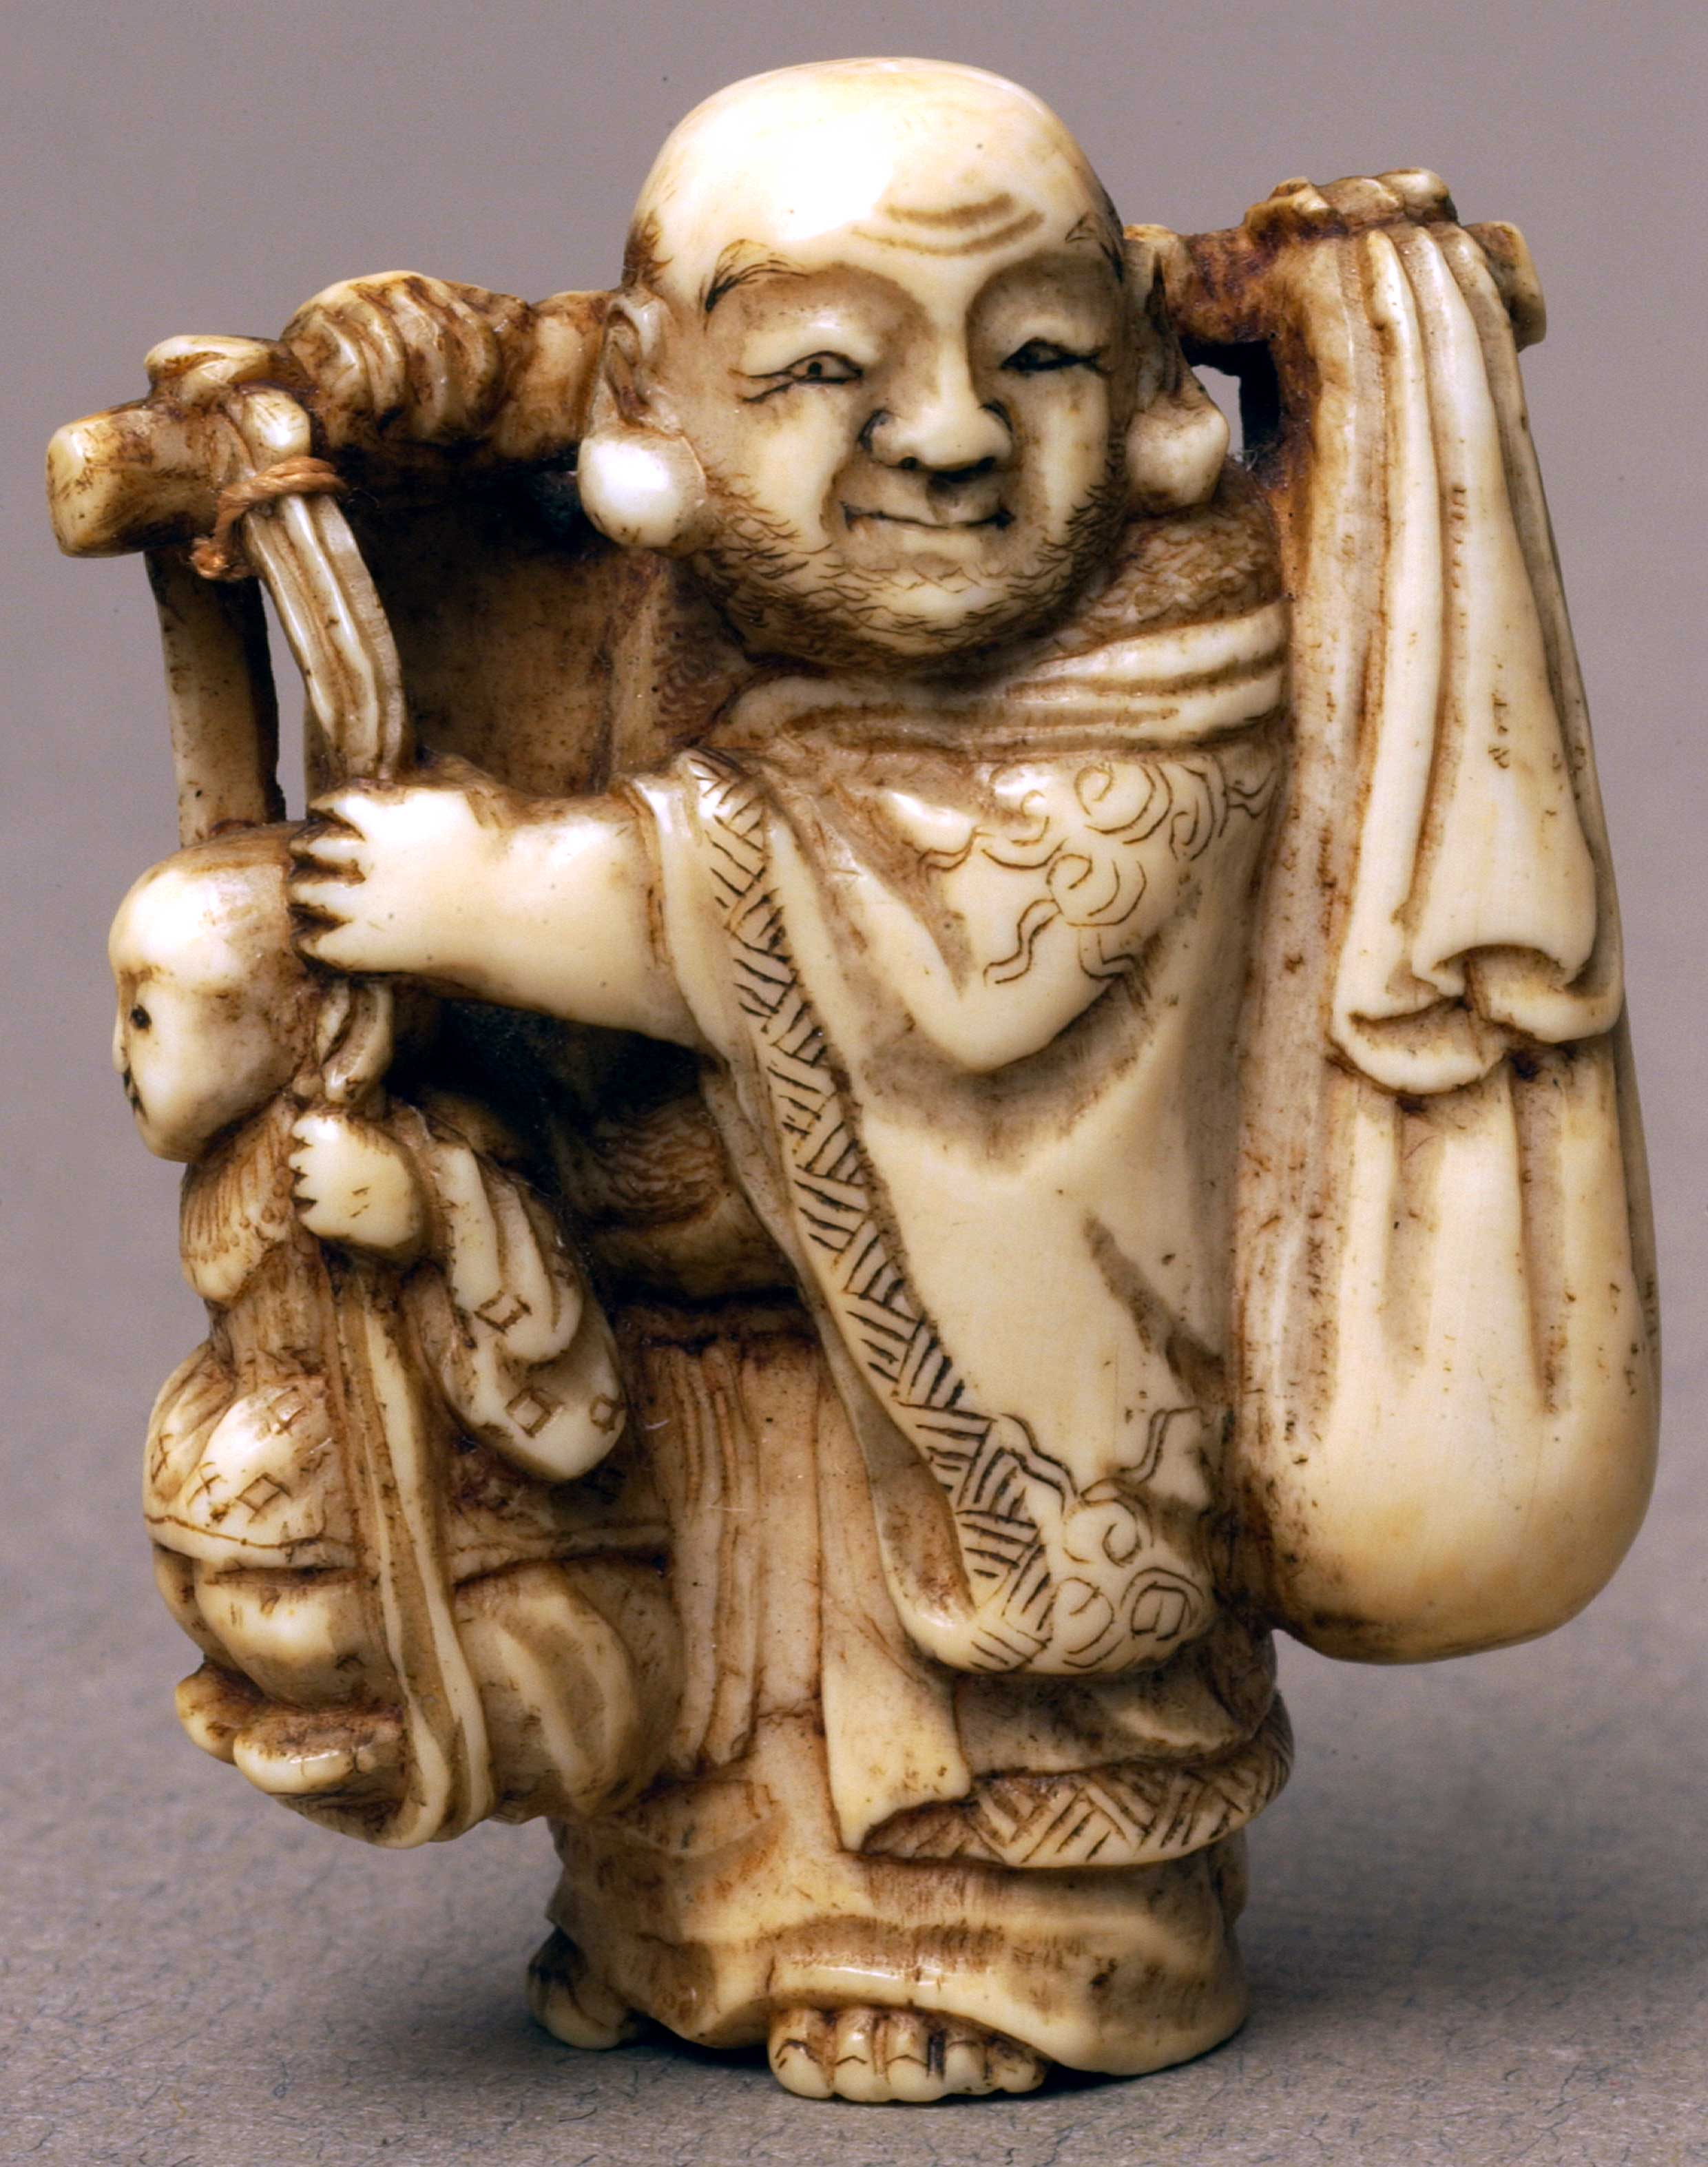 Netsuke depicting a man carrying a branch